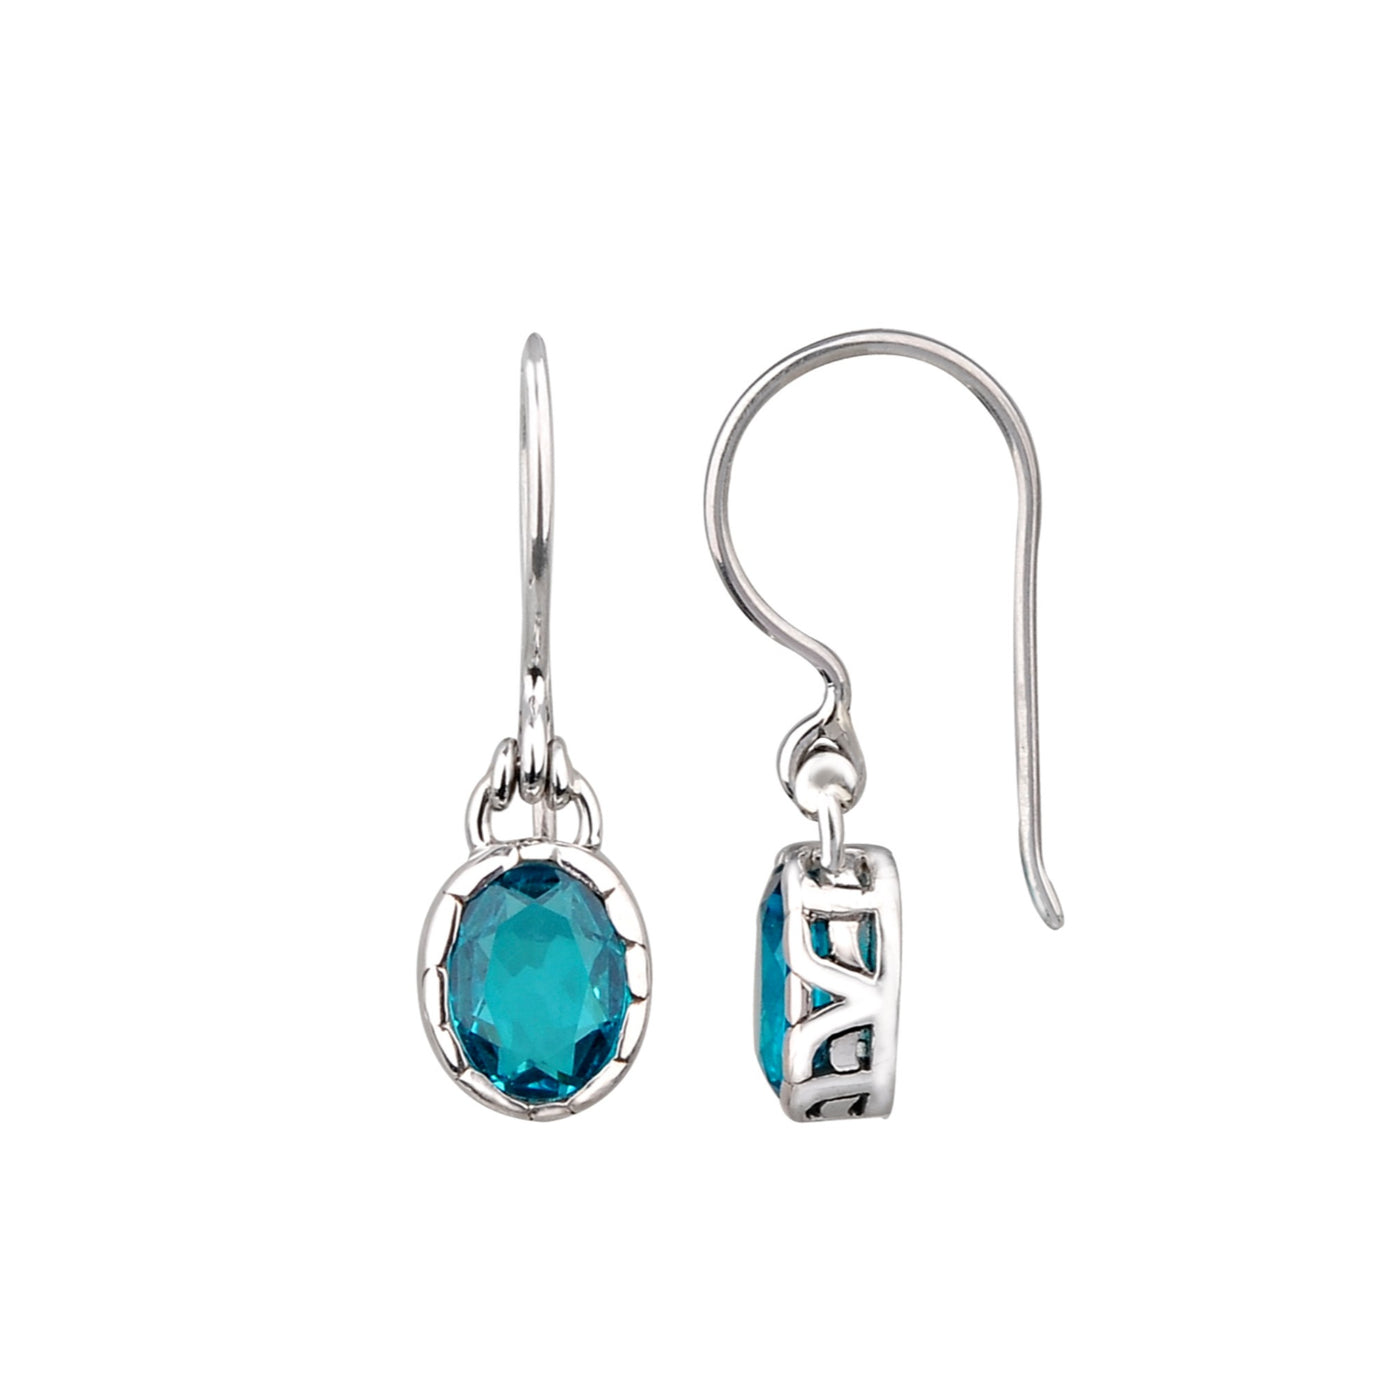 JD E71014DOBAP APATITE OVAL DROP EARRINGS